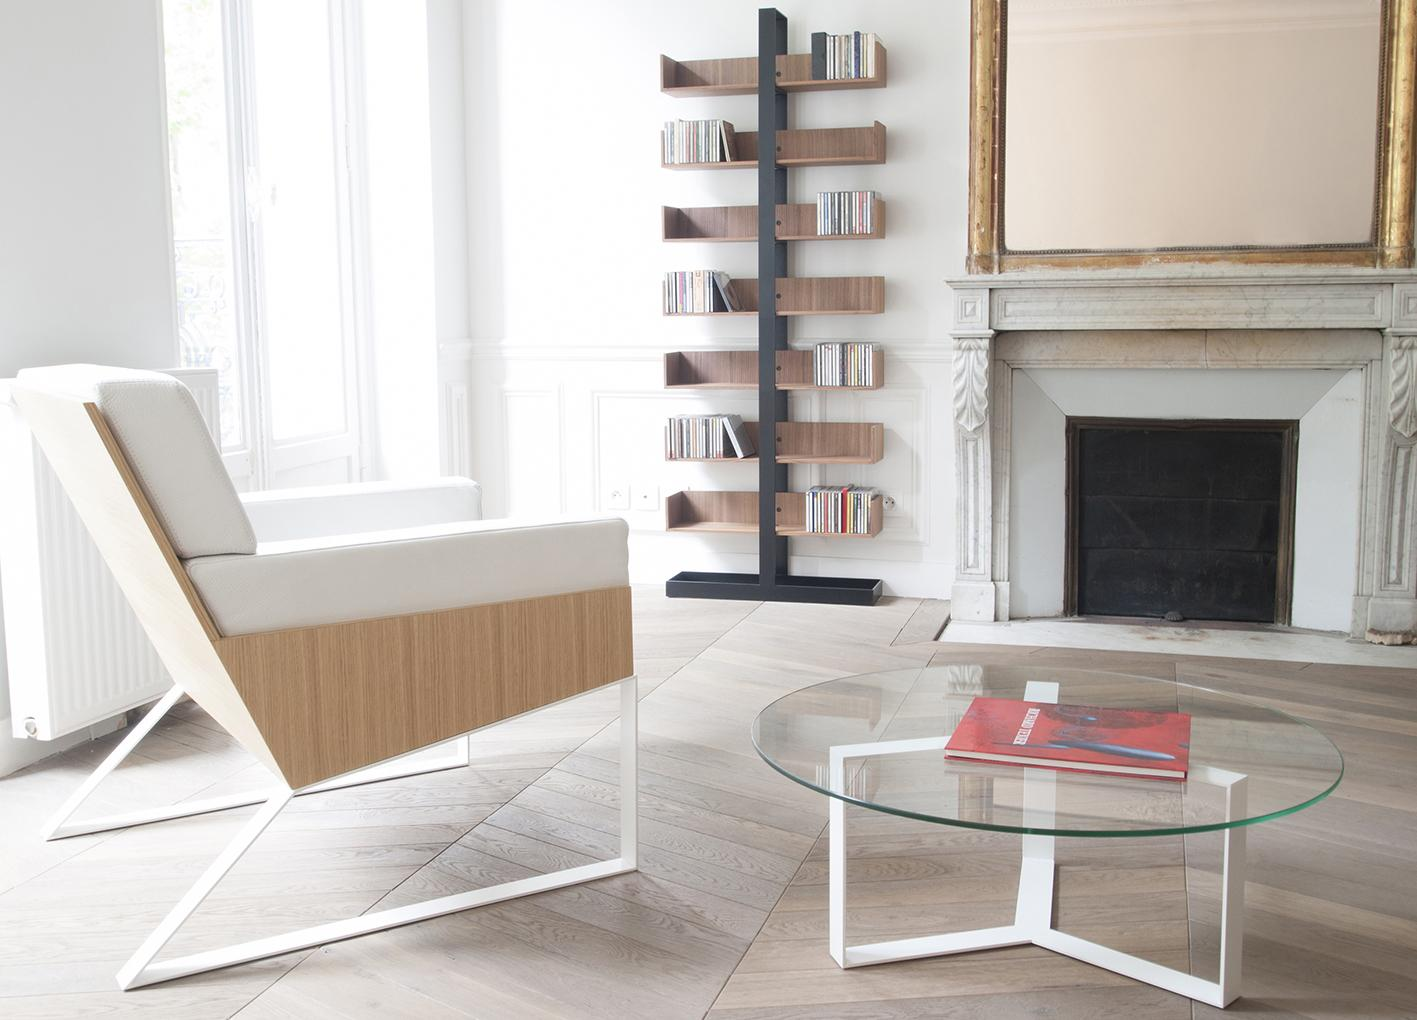 Les meubles design d alex de rouvray paperblog for Ameublement design